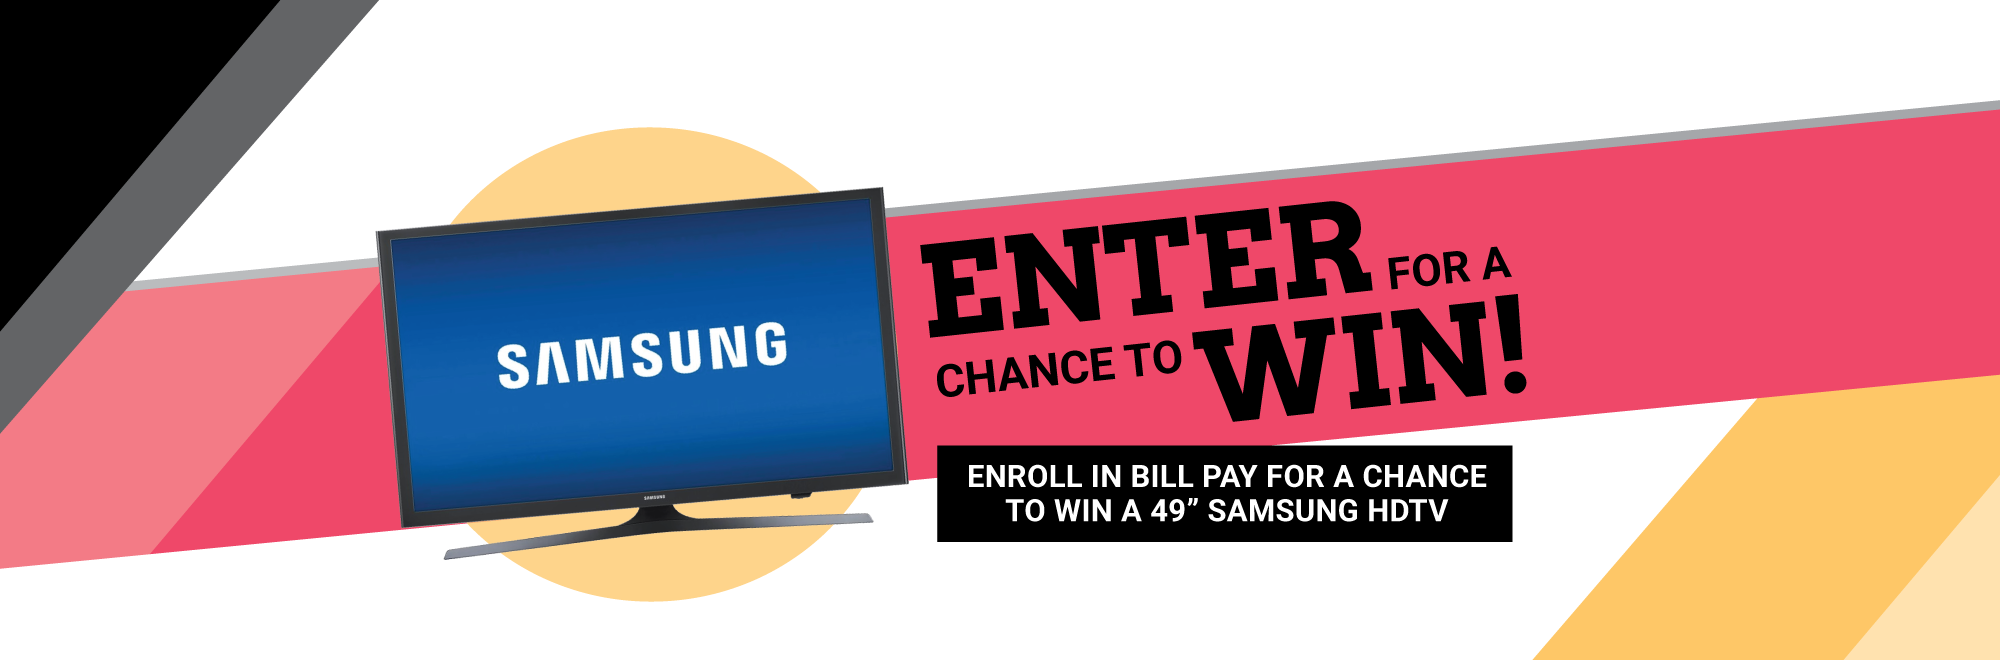 "Enroll in Bill Pay for a chance to win a 49"" HDTV!"